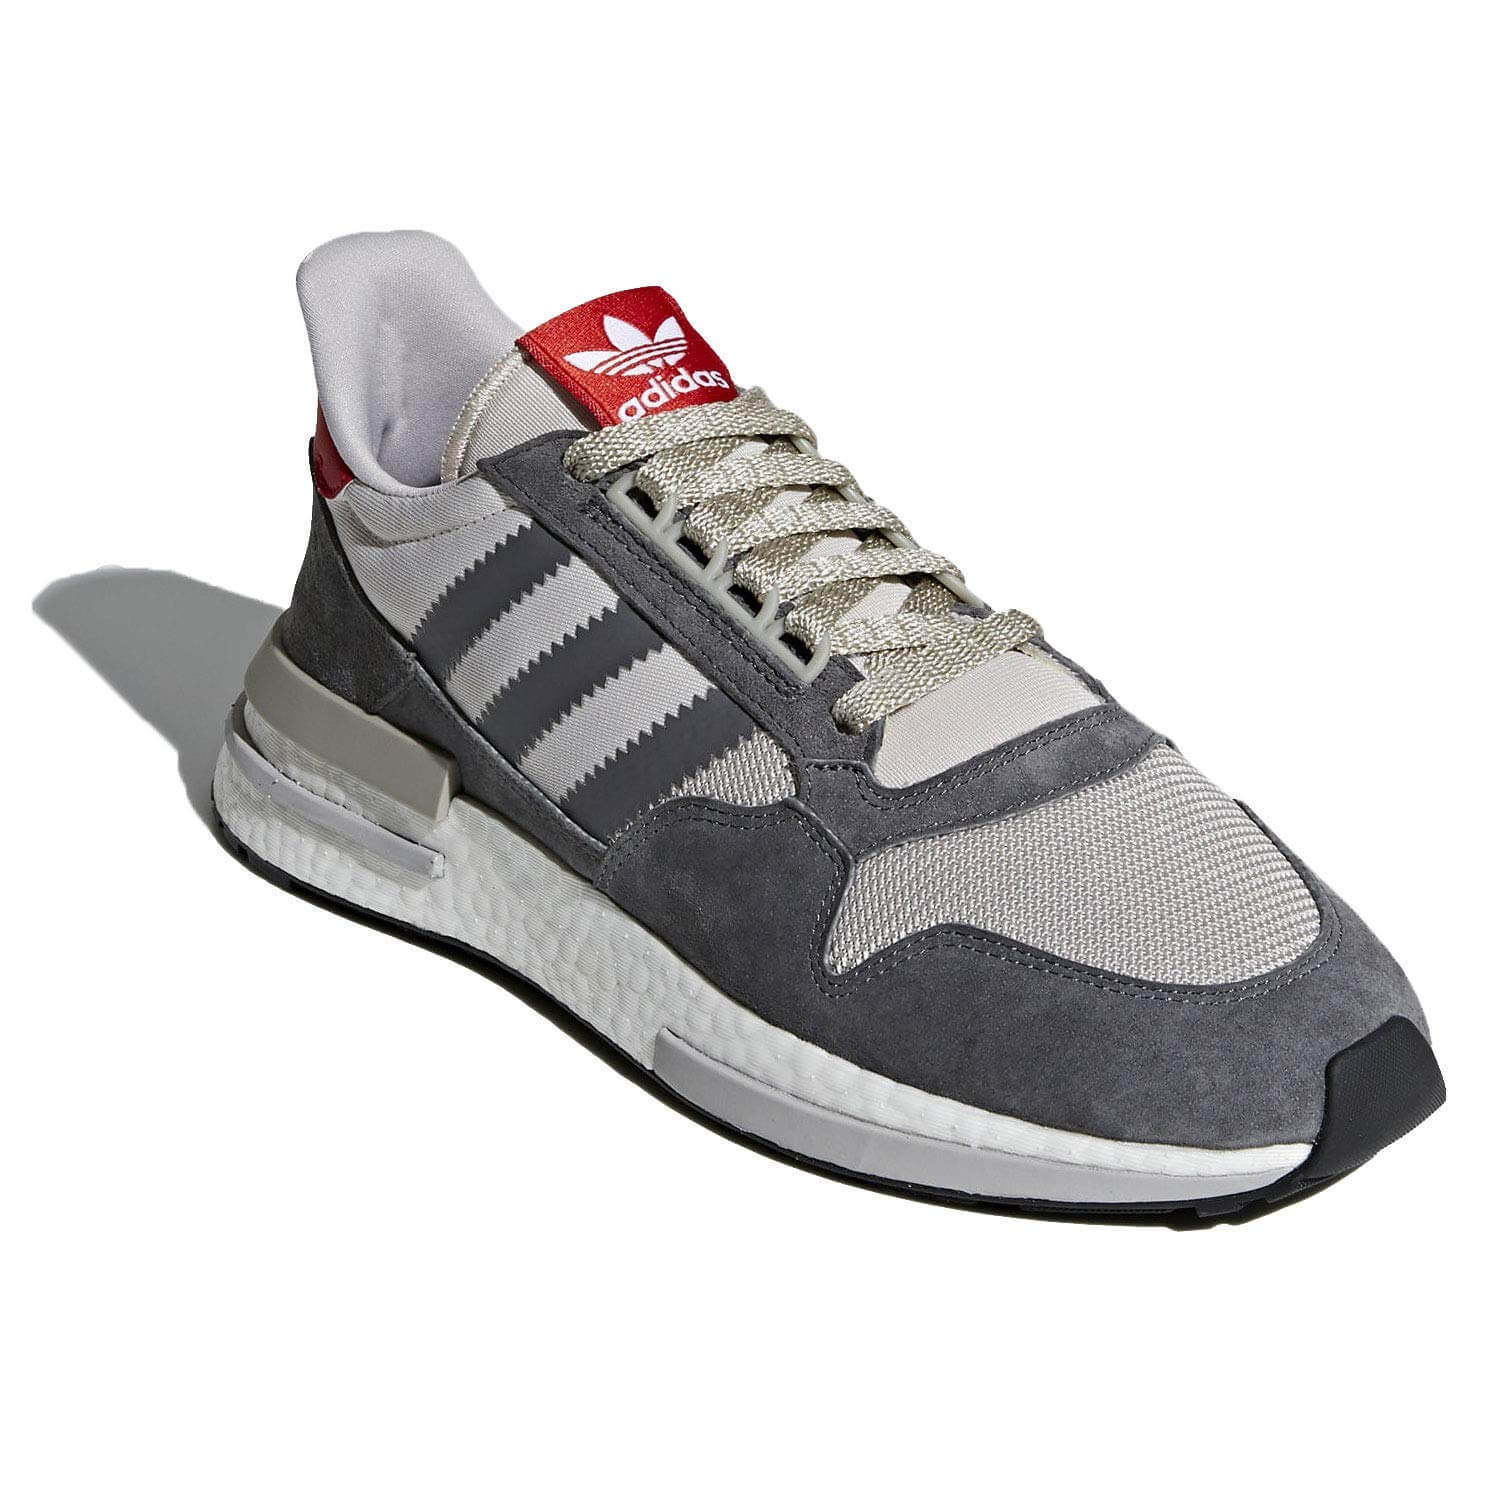 adidas zx 500 og white 56% di sconto sglabs.it